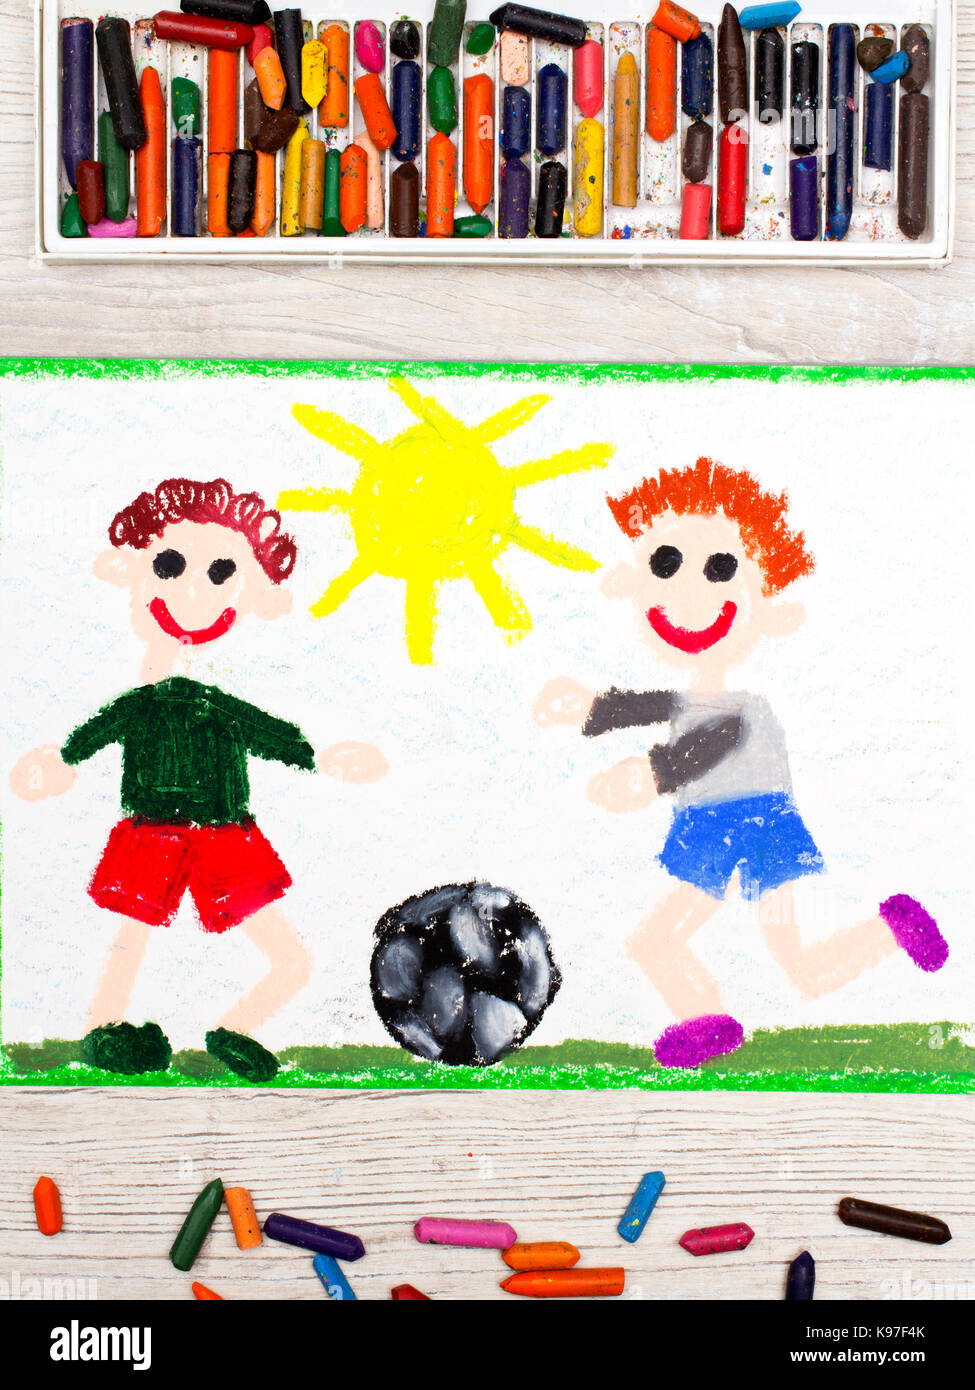 Photo Of Colorful Drawing Two Little Boys Play Football Soccer Game Stock Photo Alamy